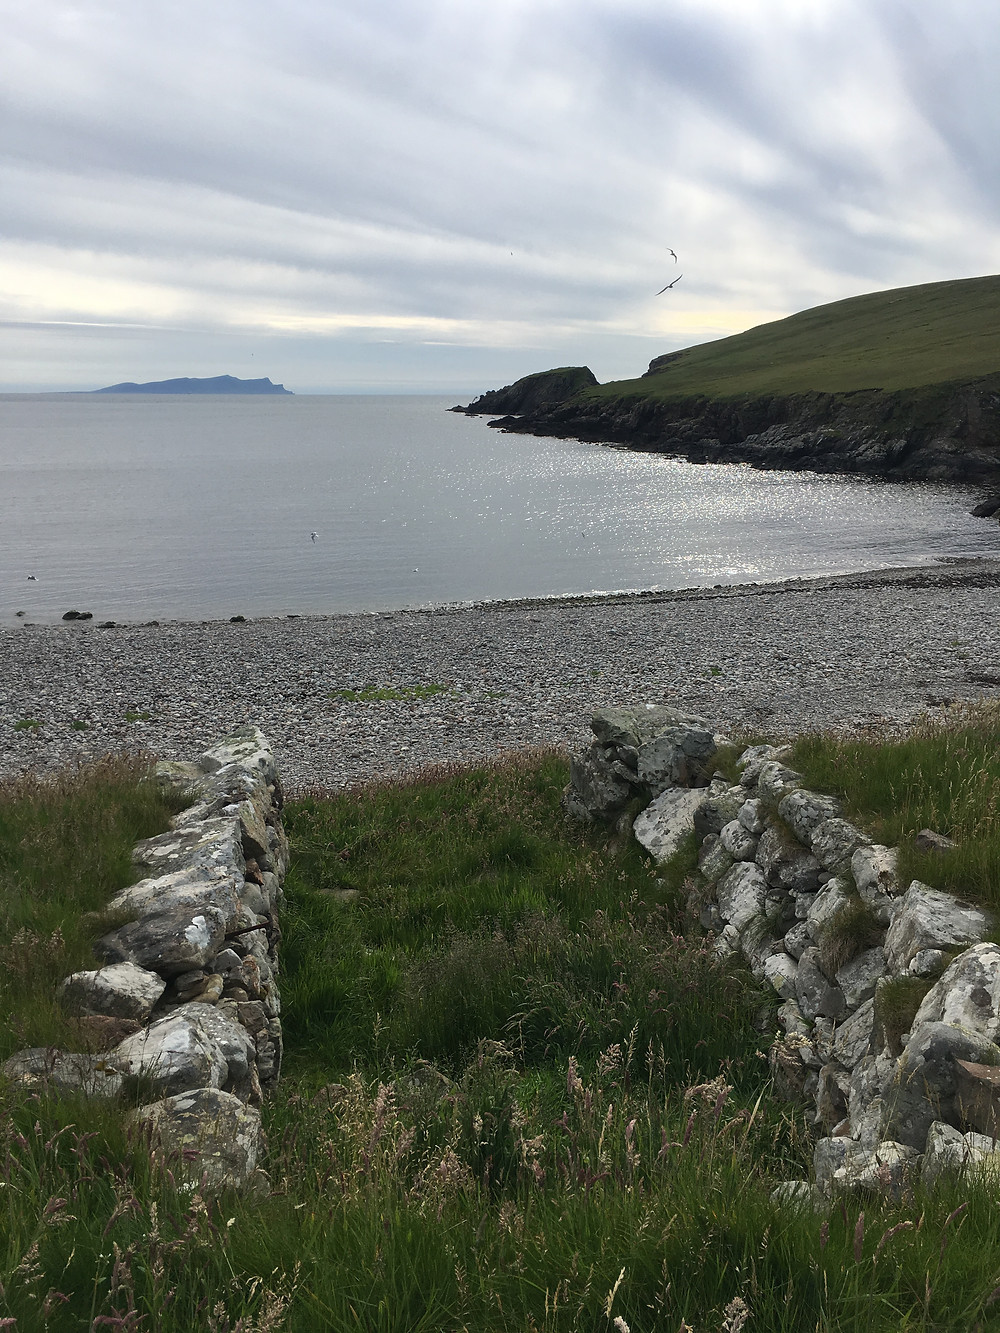 Looking west from a boat noost which is in the foreground at the remains of the fishing station at Dale of Walls. The island of Foula can be seen in the distance.